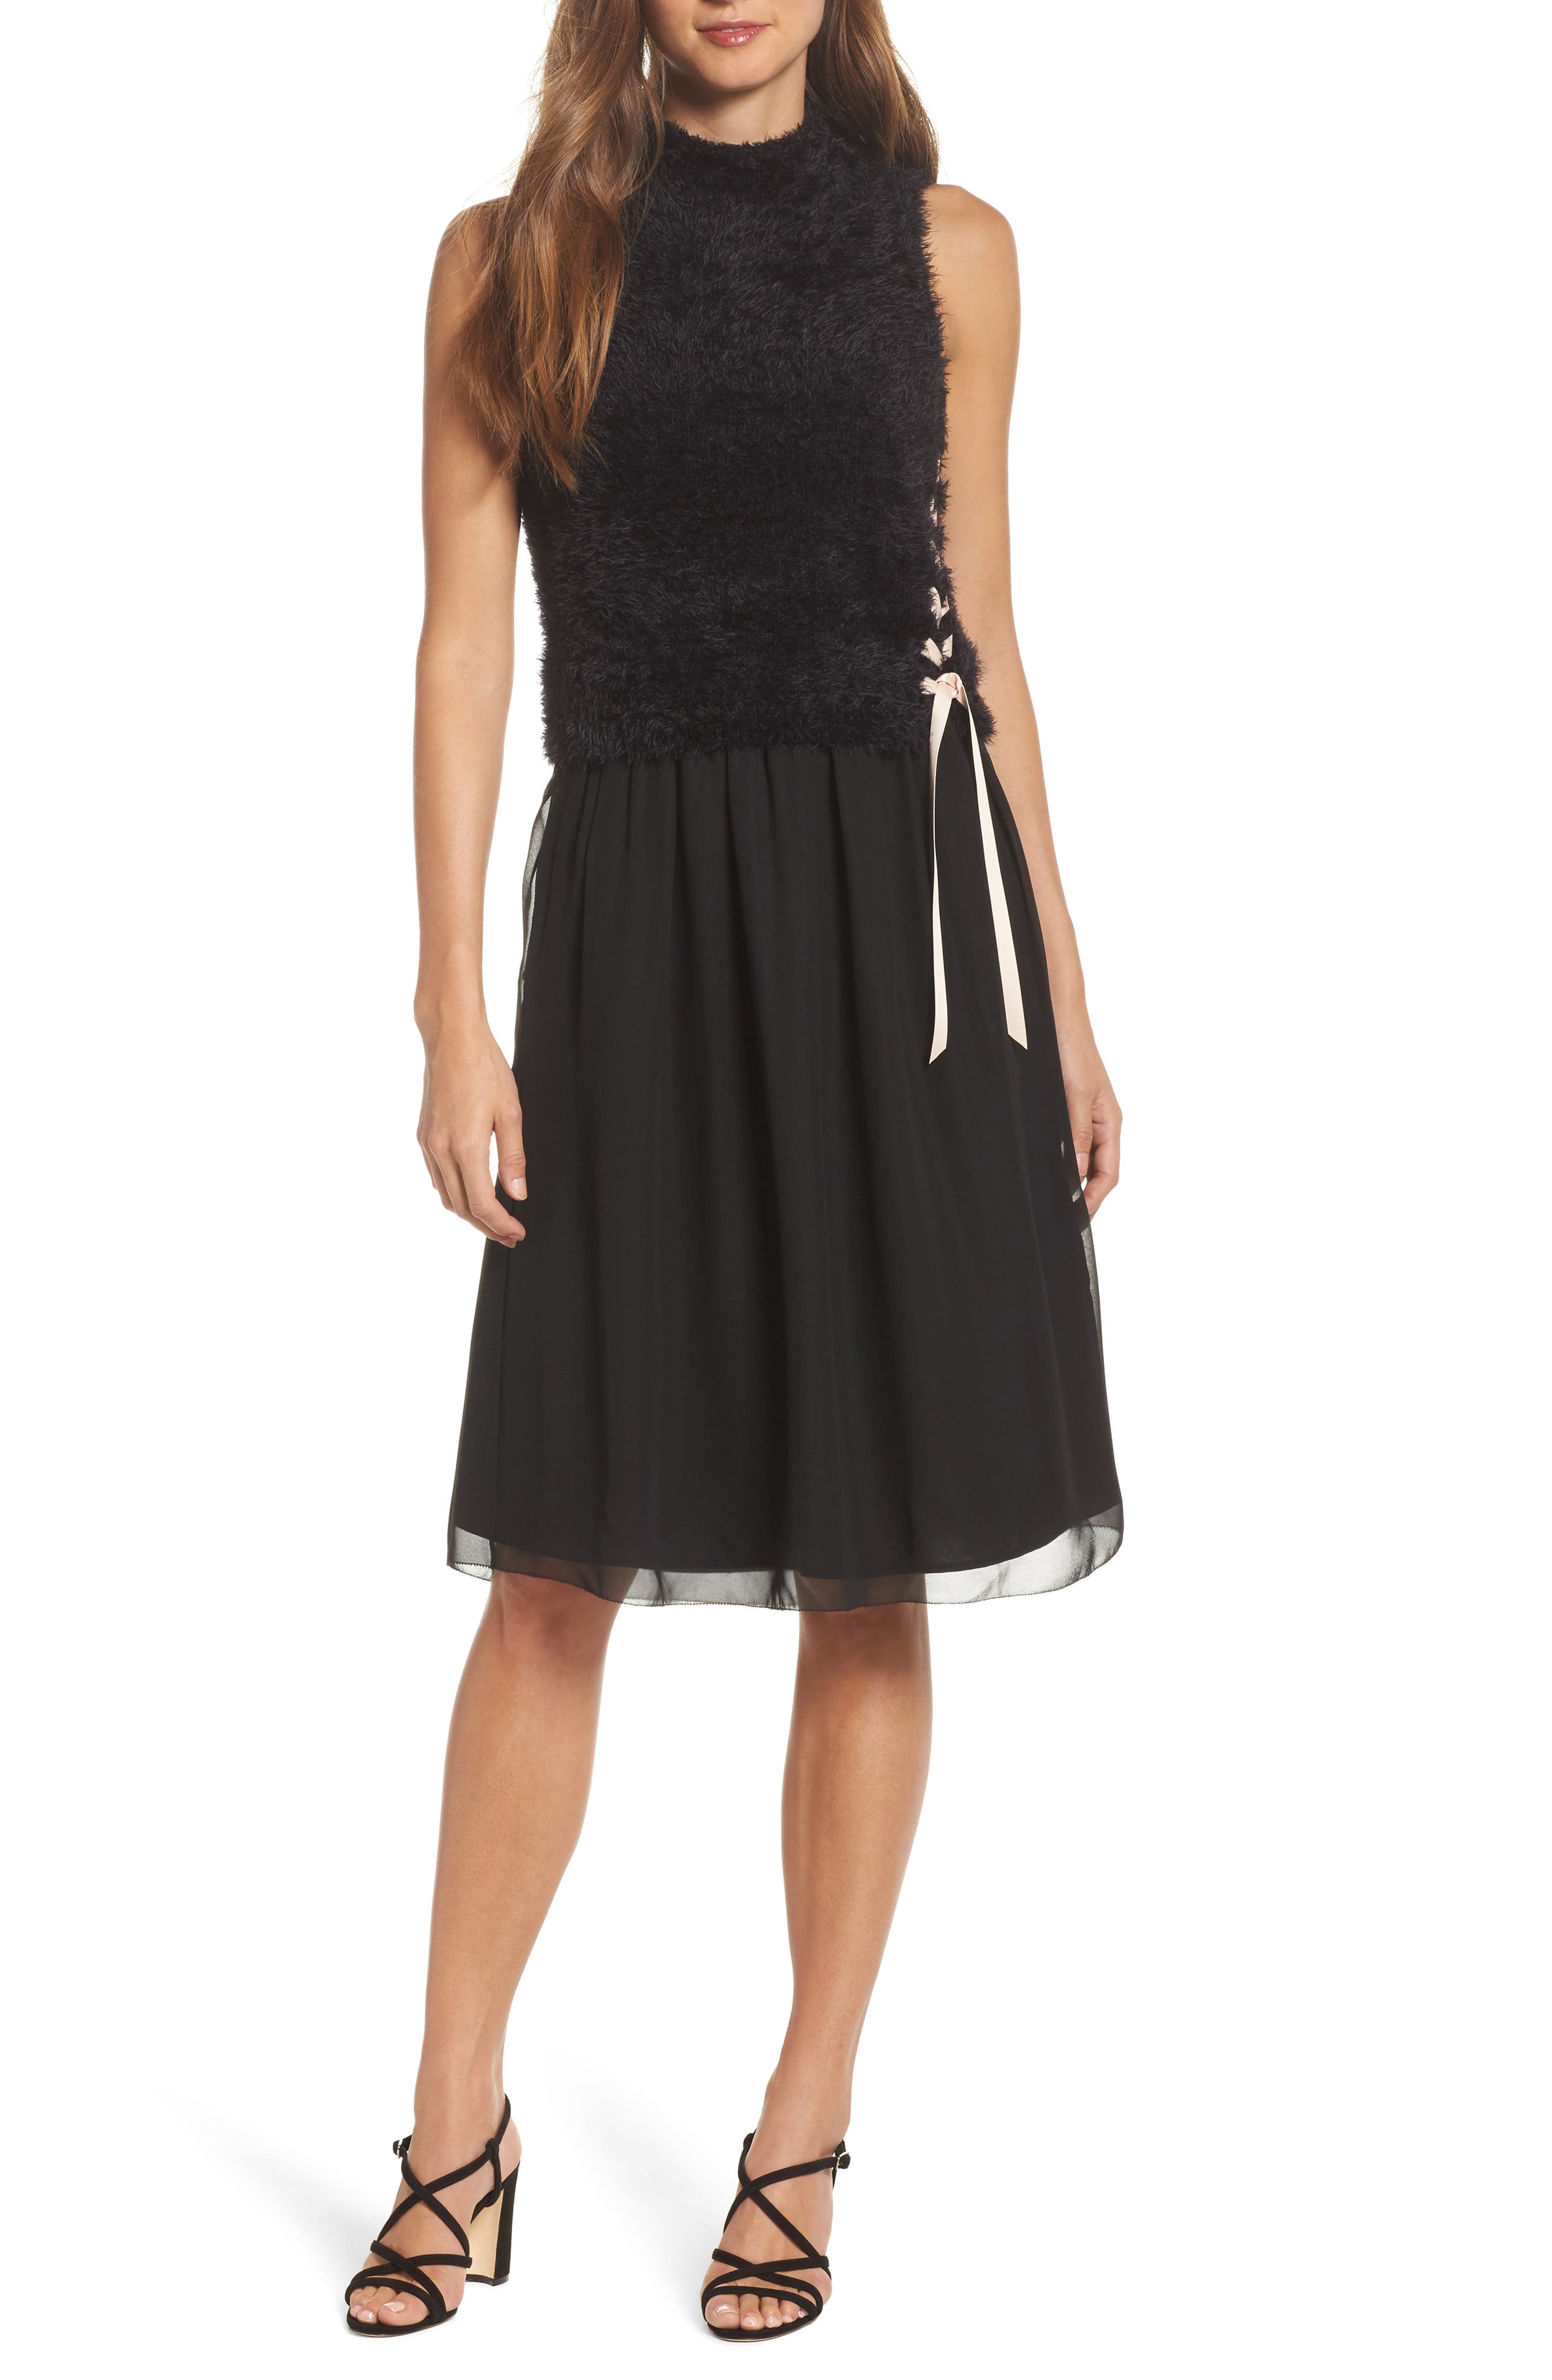 NIC + ZOE Lace-Up Dress,                             Main thumbnail 1, color,                             004